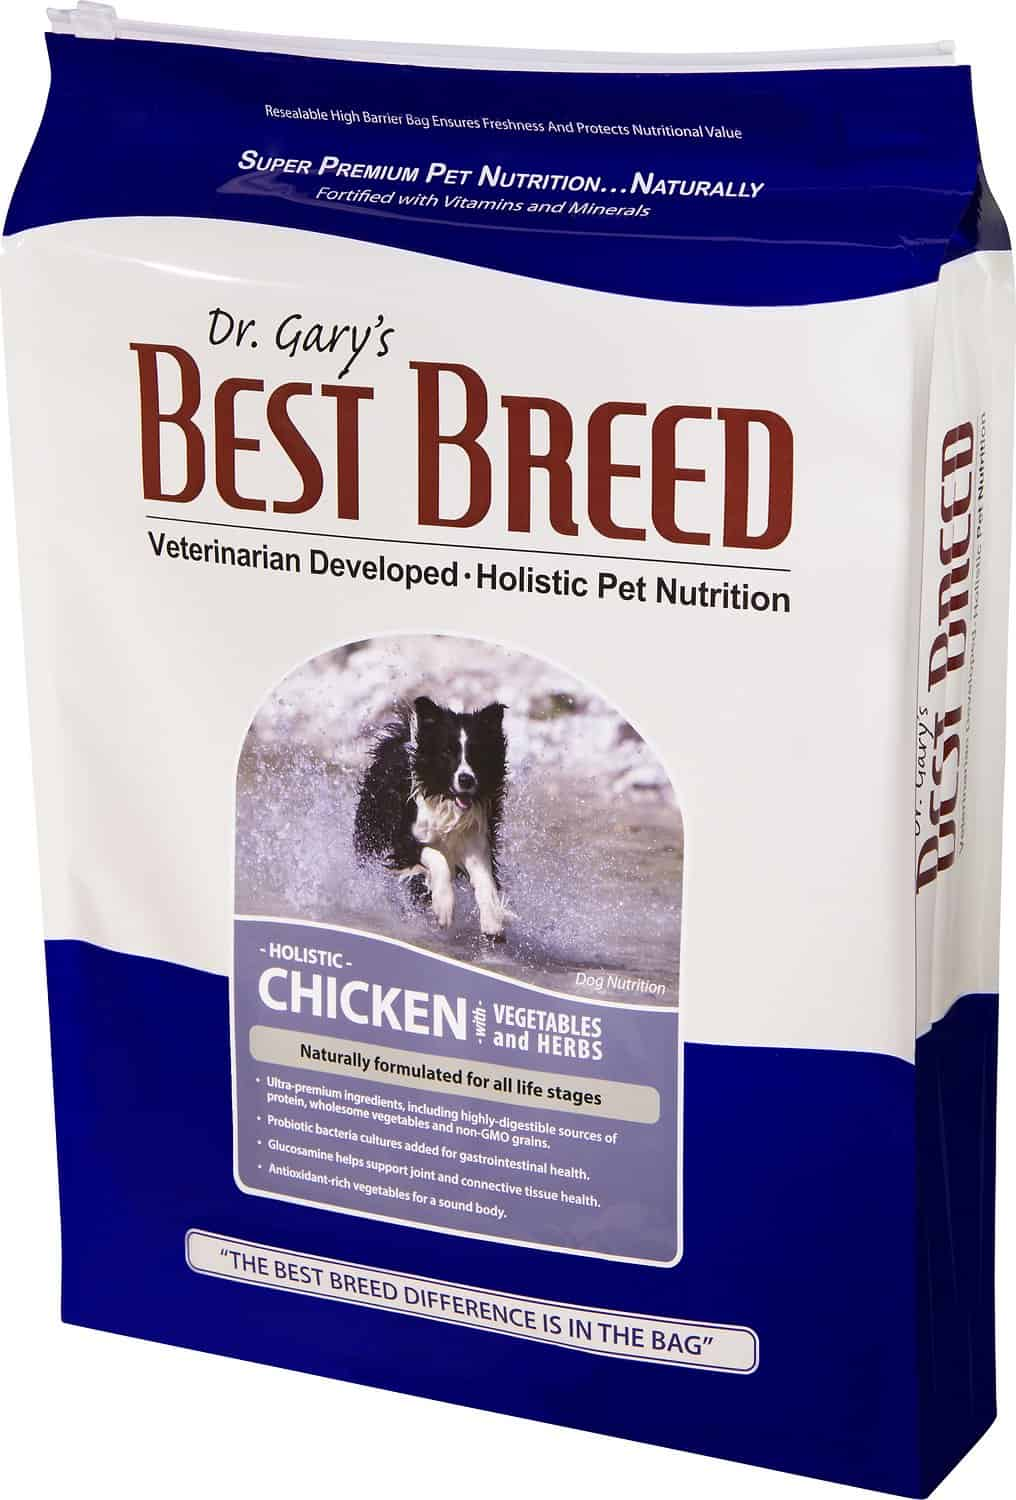 Dr. Gary's Best Breed Dog Food Review 2021: Best Holistic Pet Food? 12